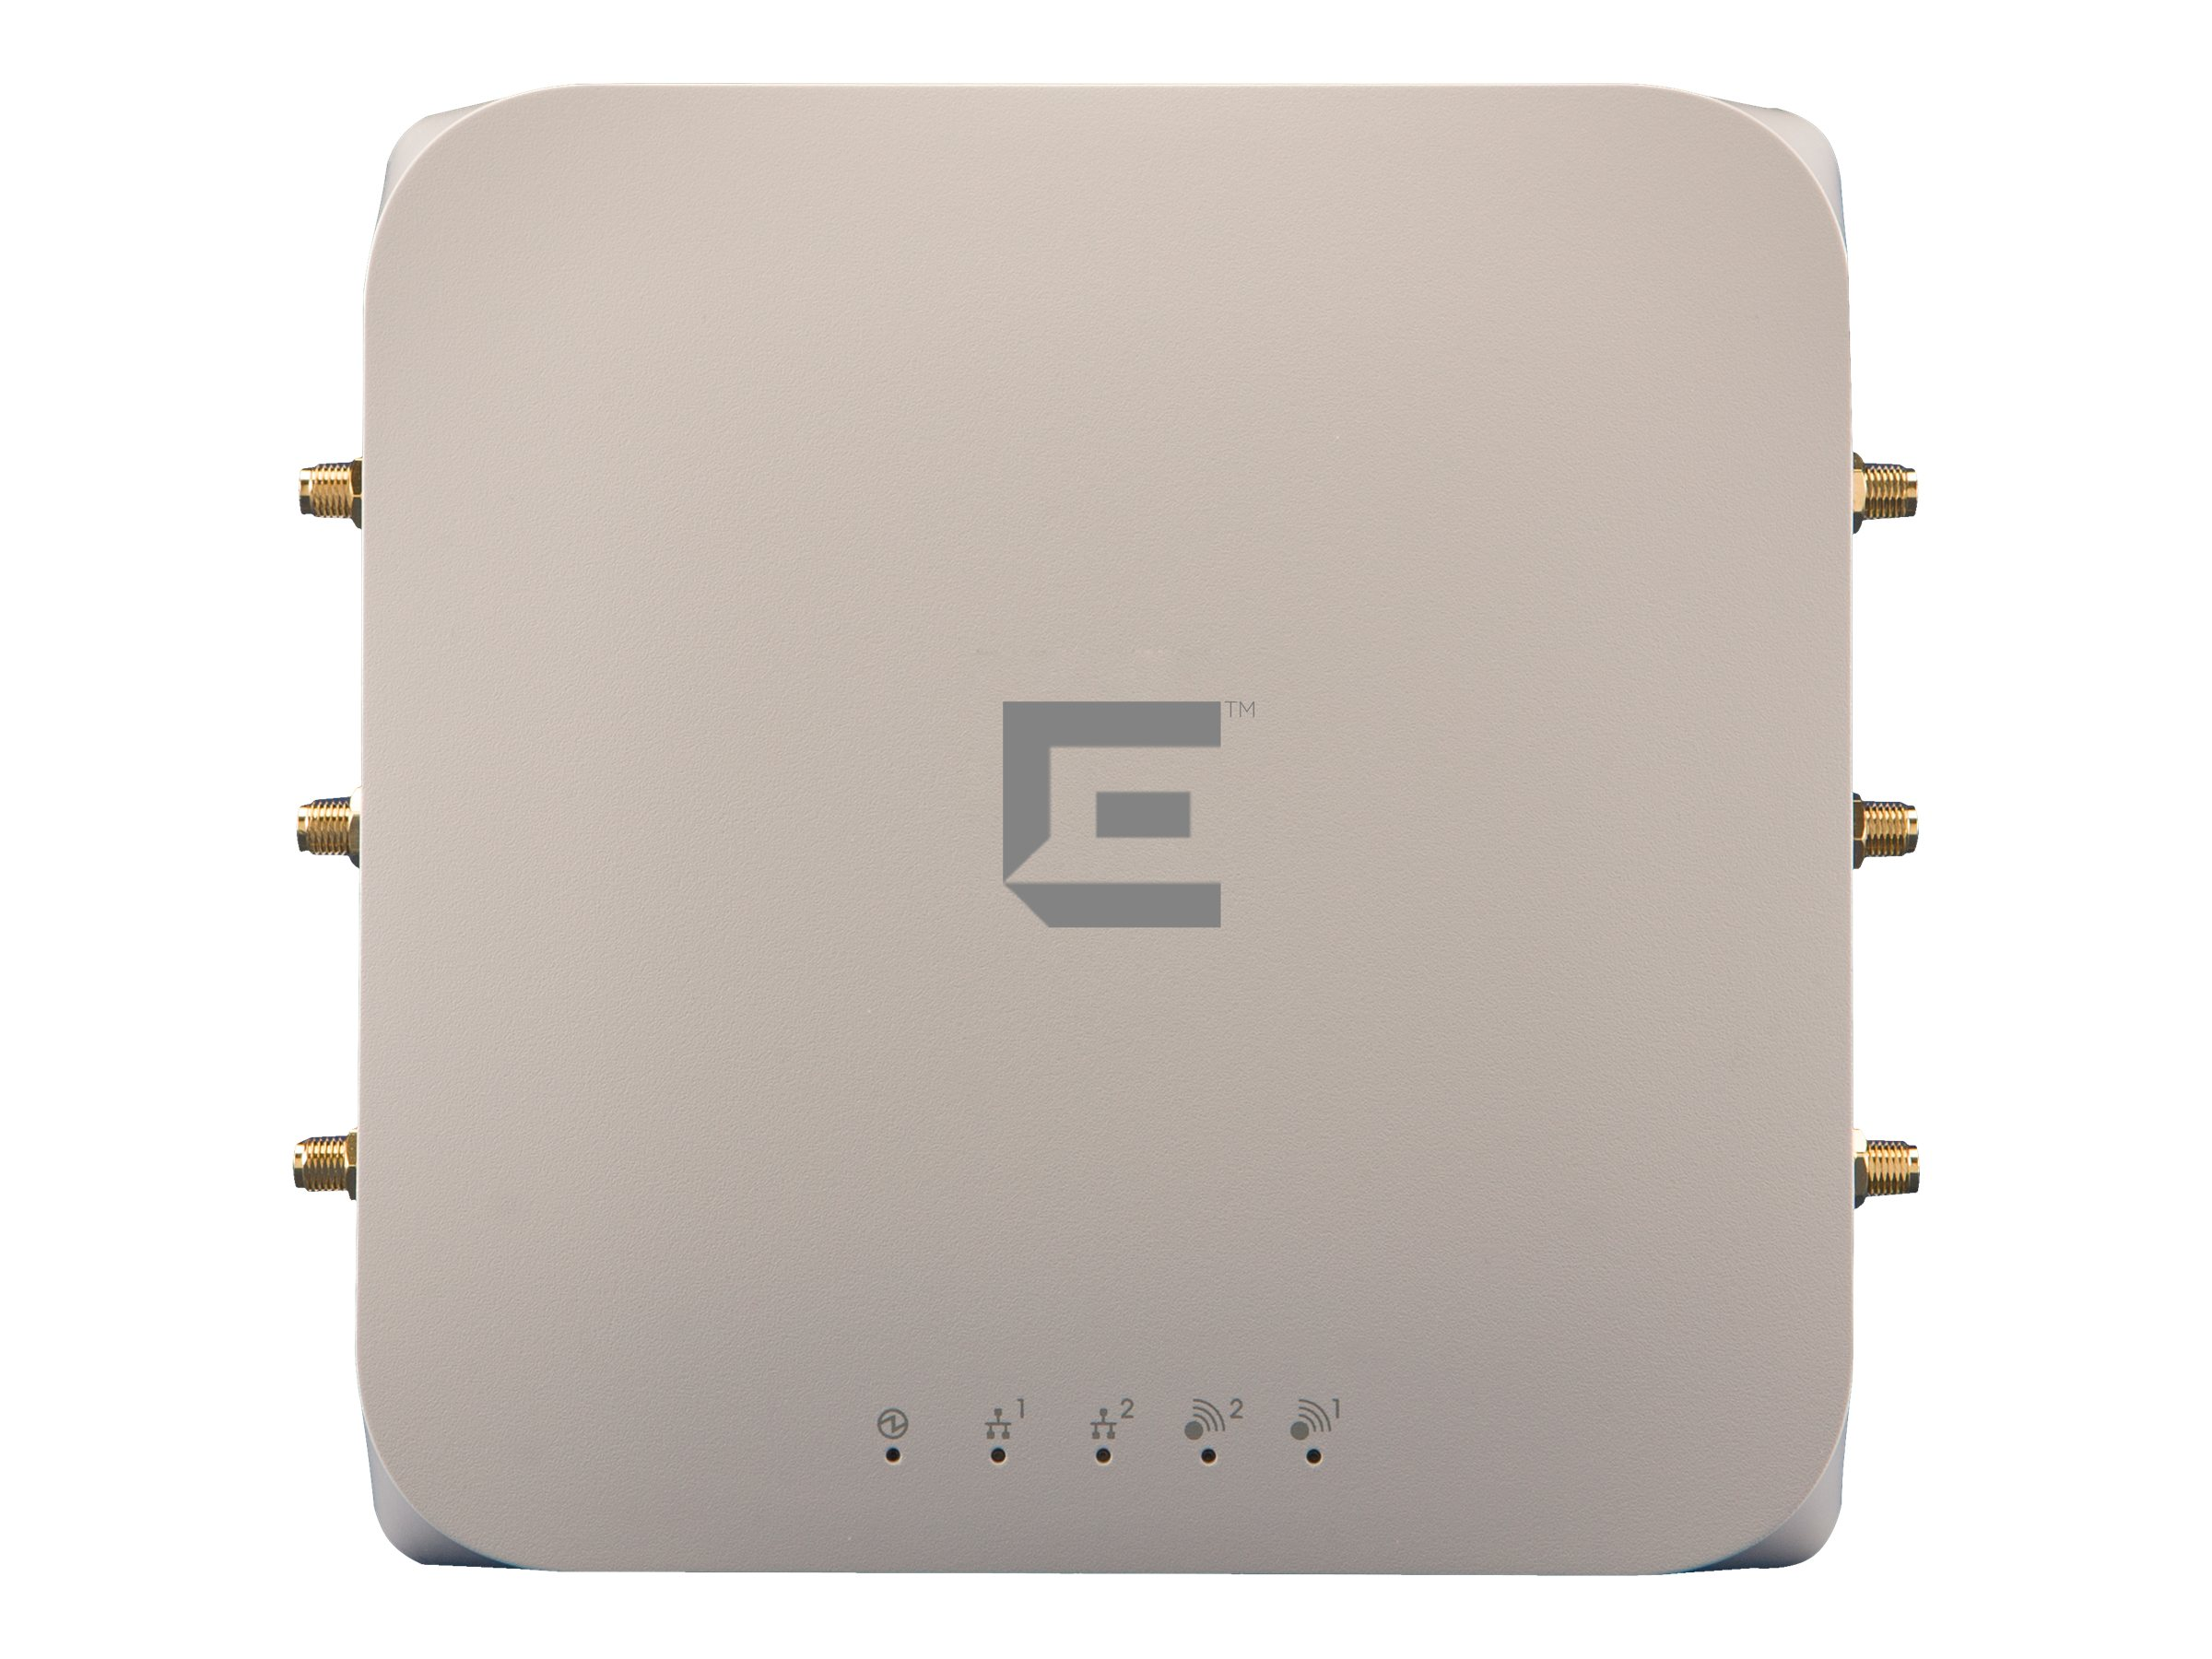 Extreme Networks identiFi AP3825e Indoor Access Point - Drahtlose Basisstation - 802.11a/b/g/n/ac - Dualband